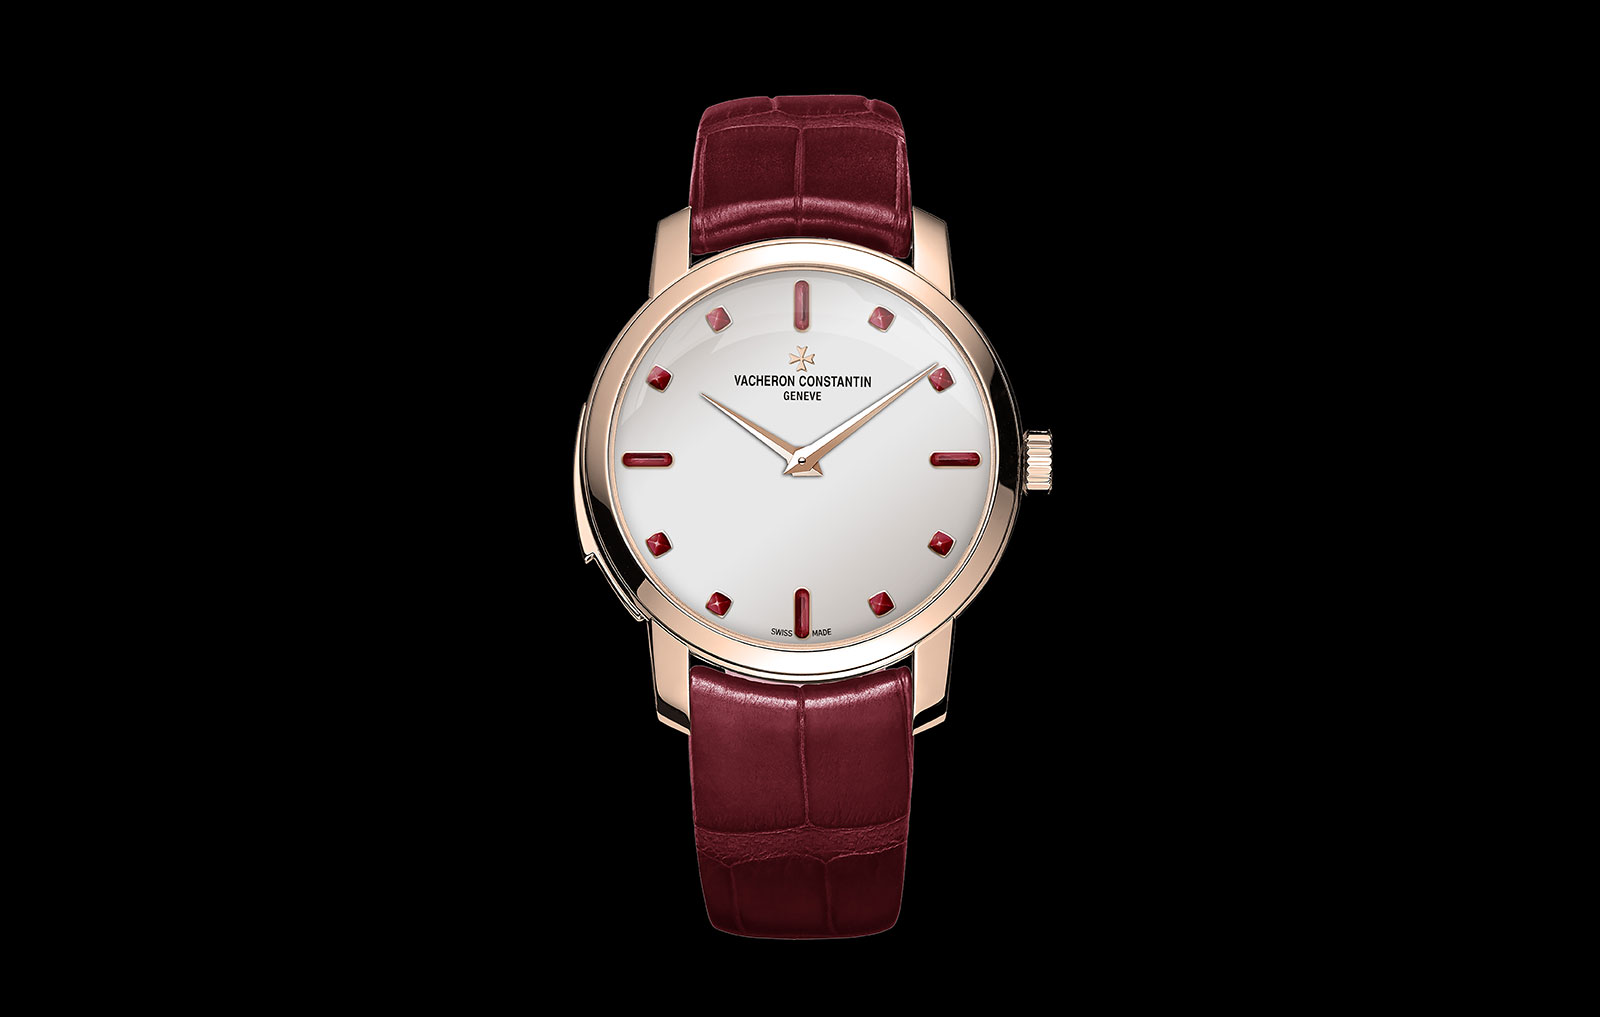 Vacheron Constantin Introduces the Les Cabinotiers Minute Repeater 'Dance of the Gemstones' | SJX Watches